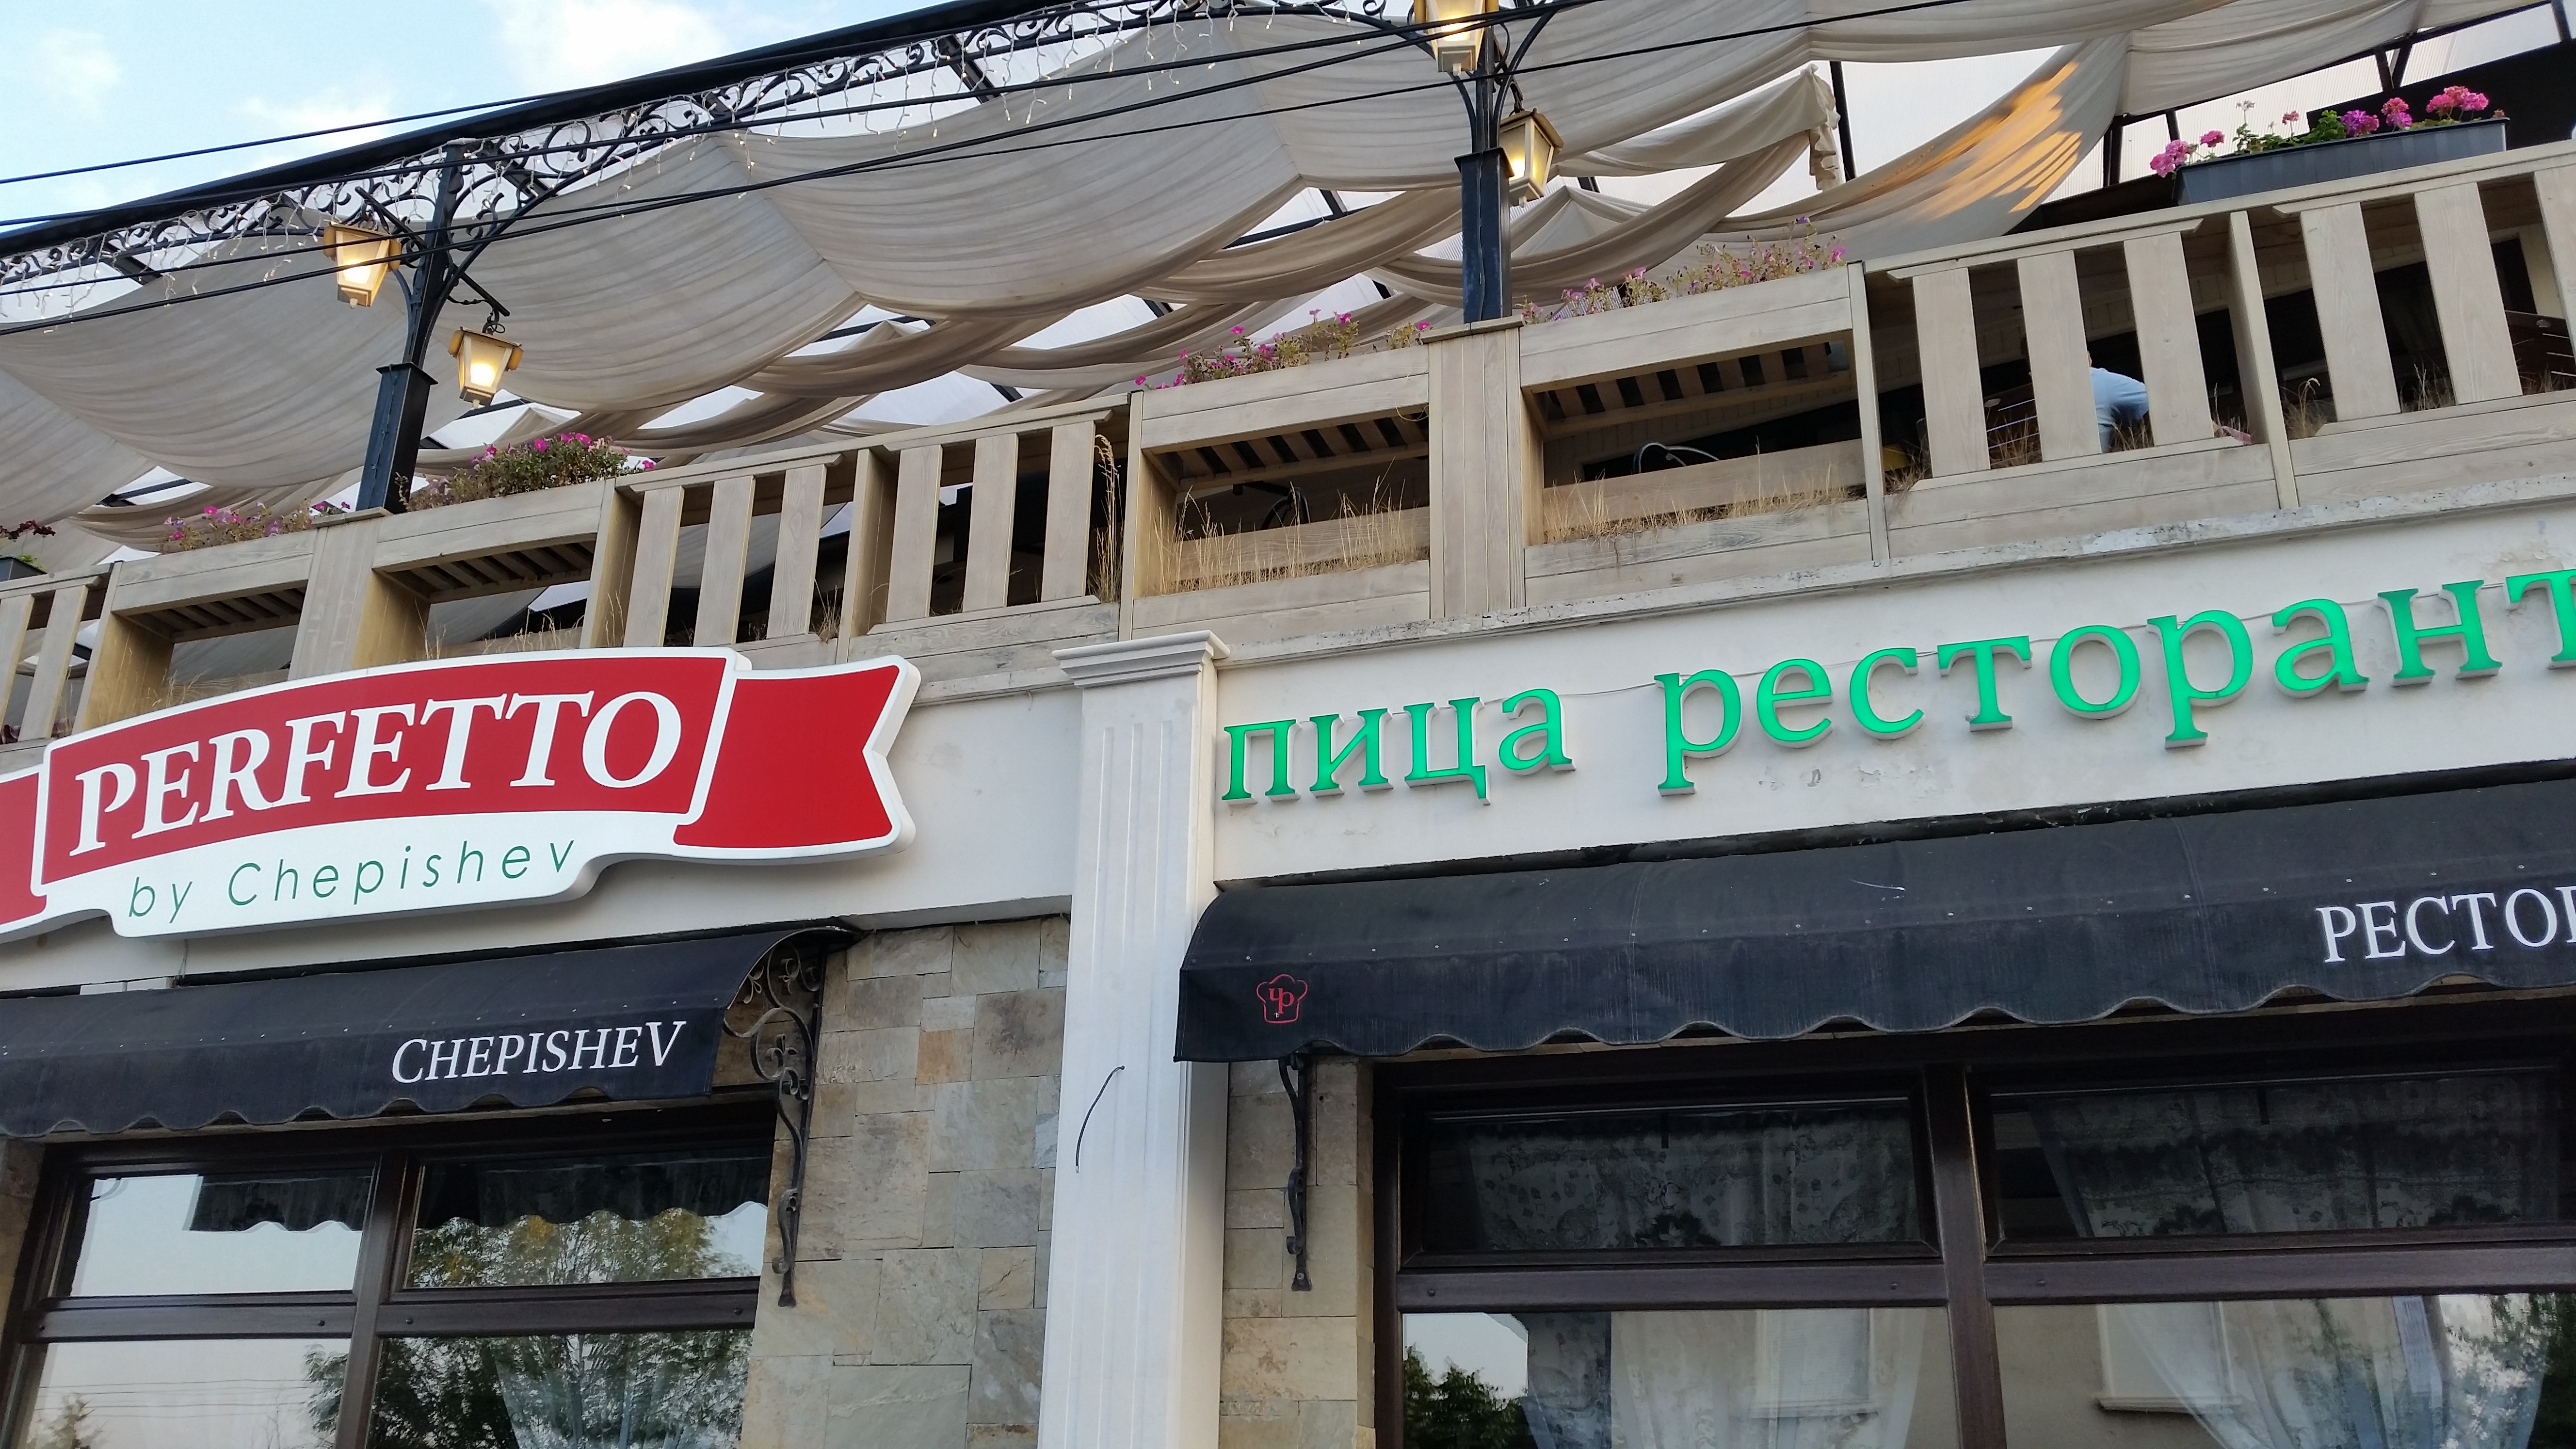 Perfetto by Chepishev restaurant by placescases.com